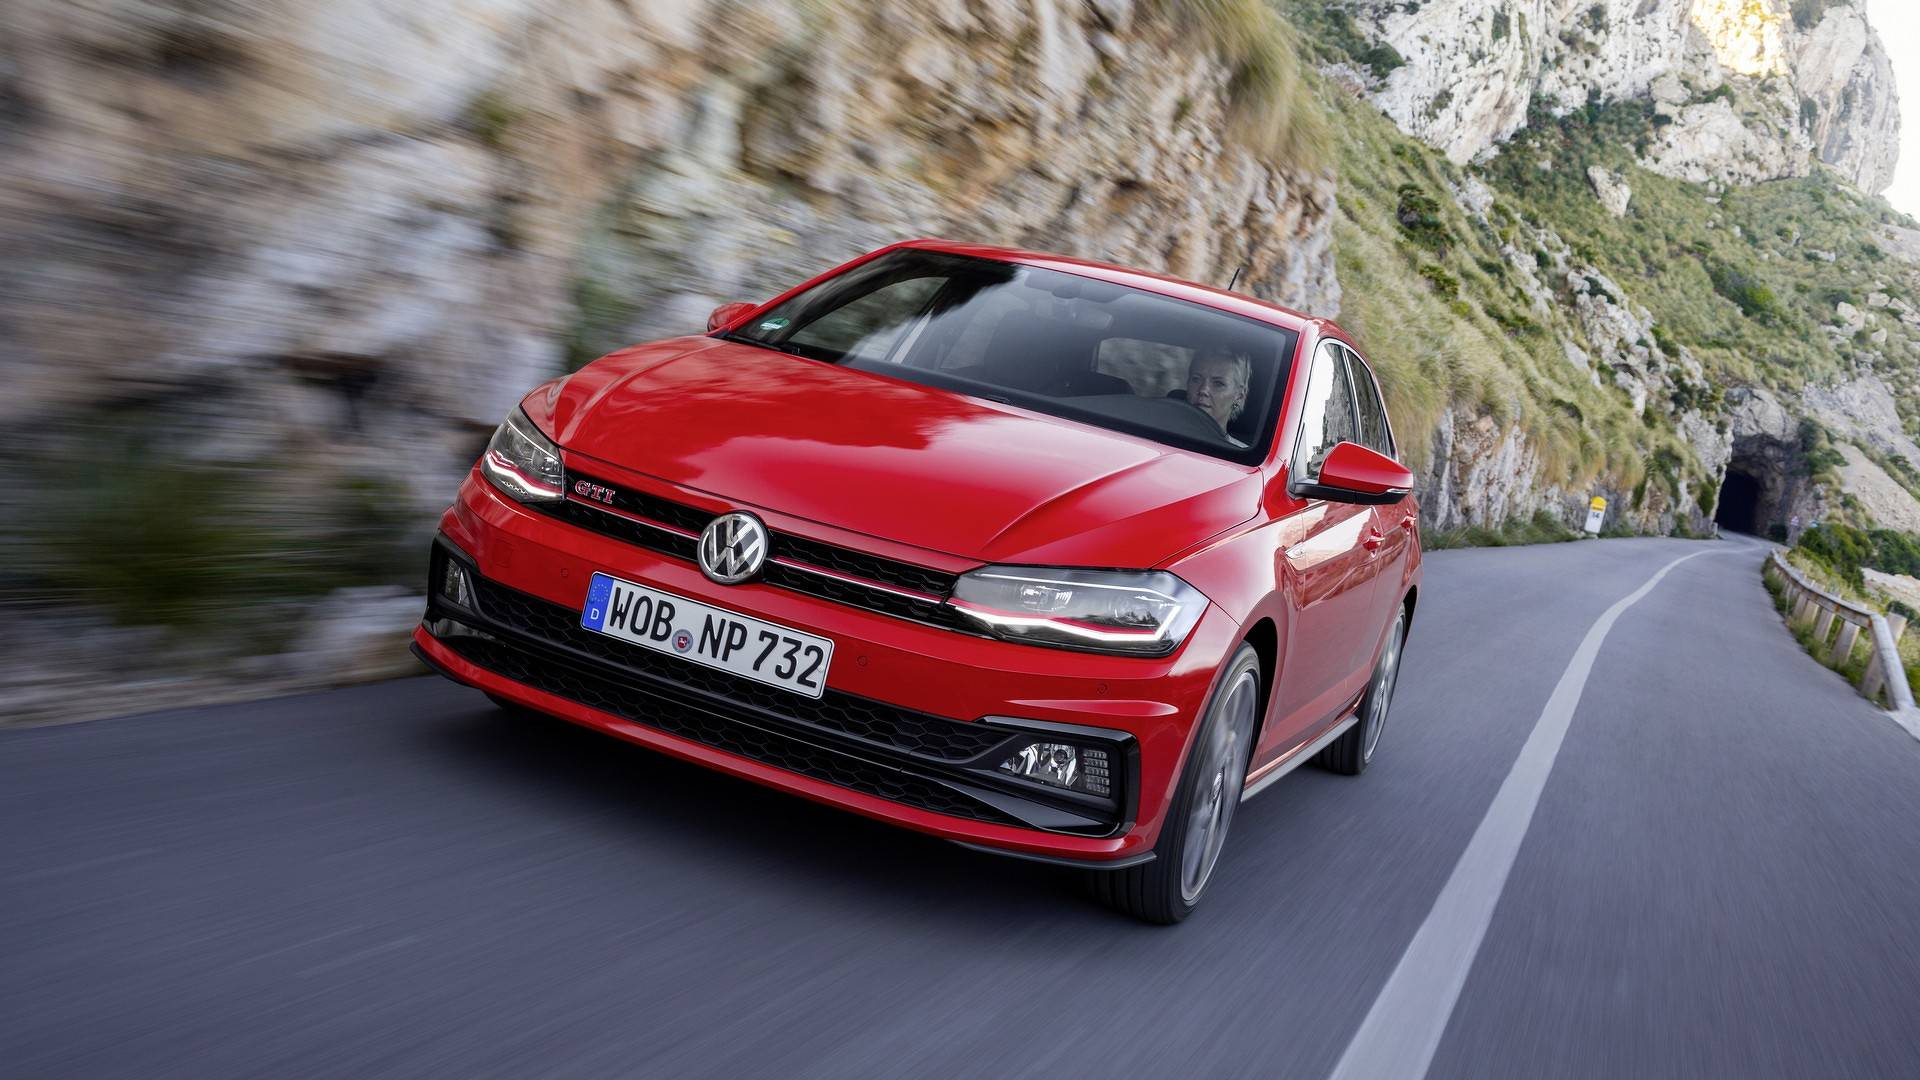 watch the new vw polo gti go 0 60 in six seconds flat vw polo gti go 0 60 in six seconds flat